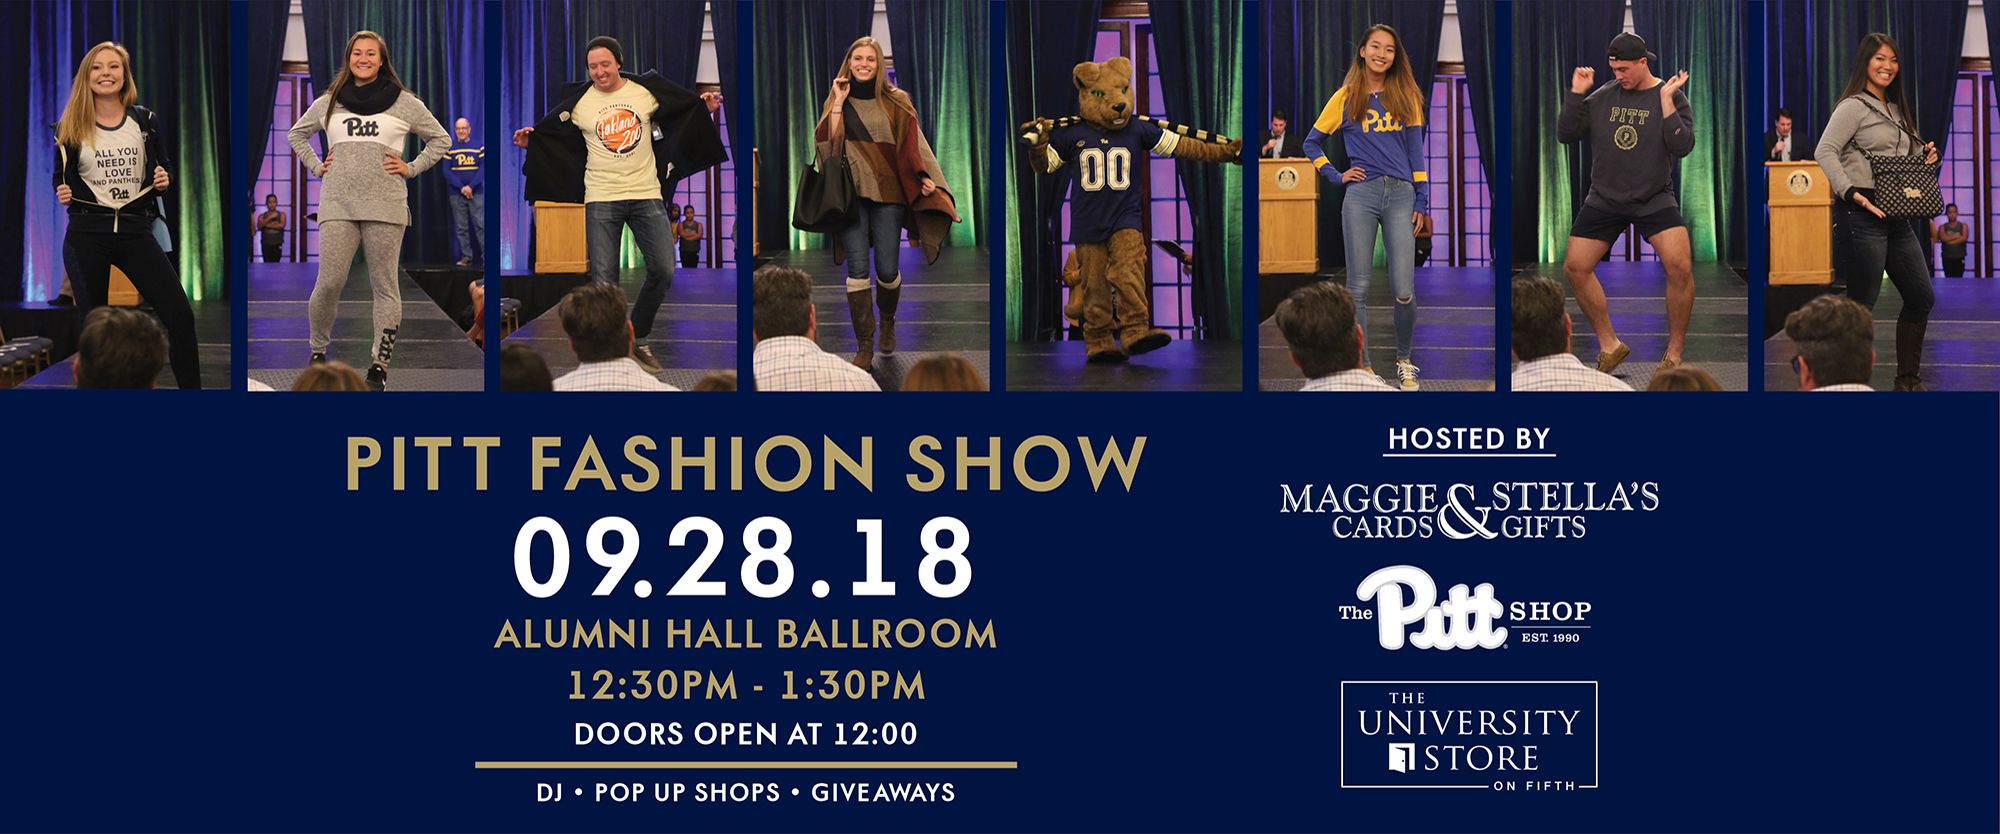 Pitt Fashion Show September 28